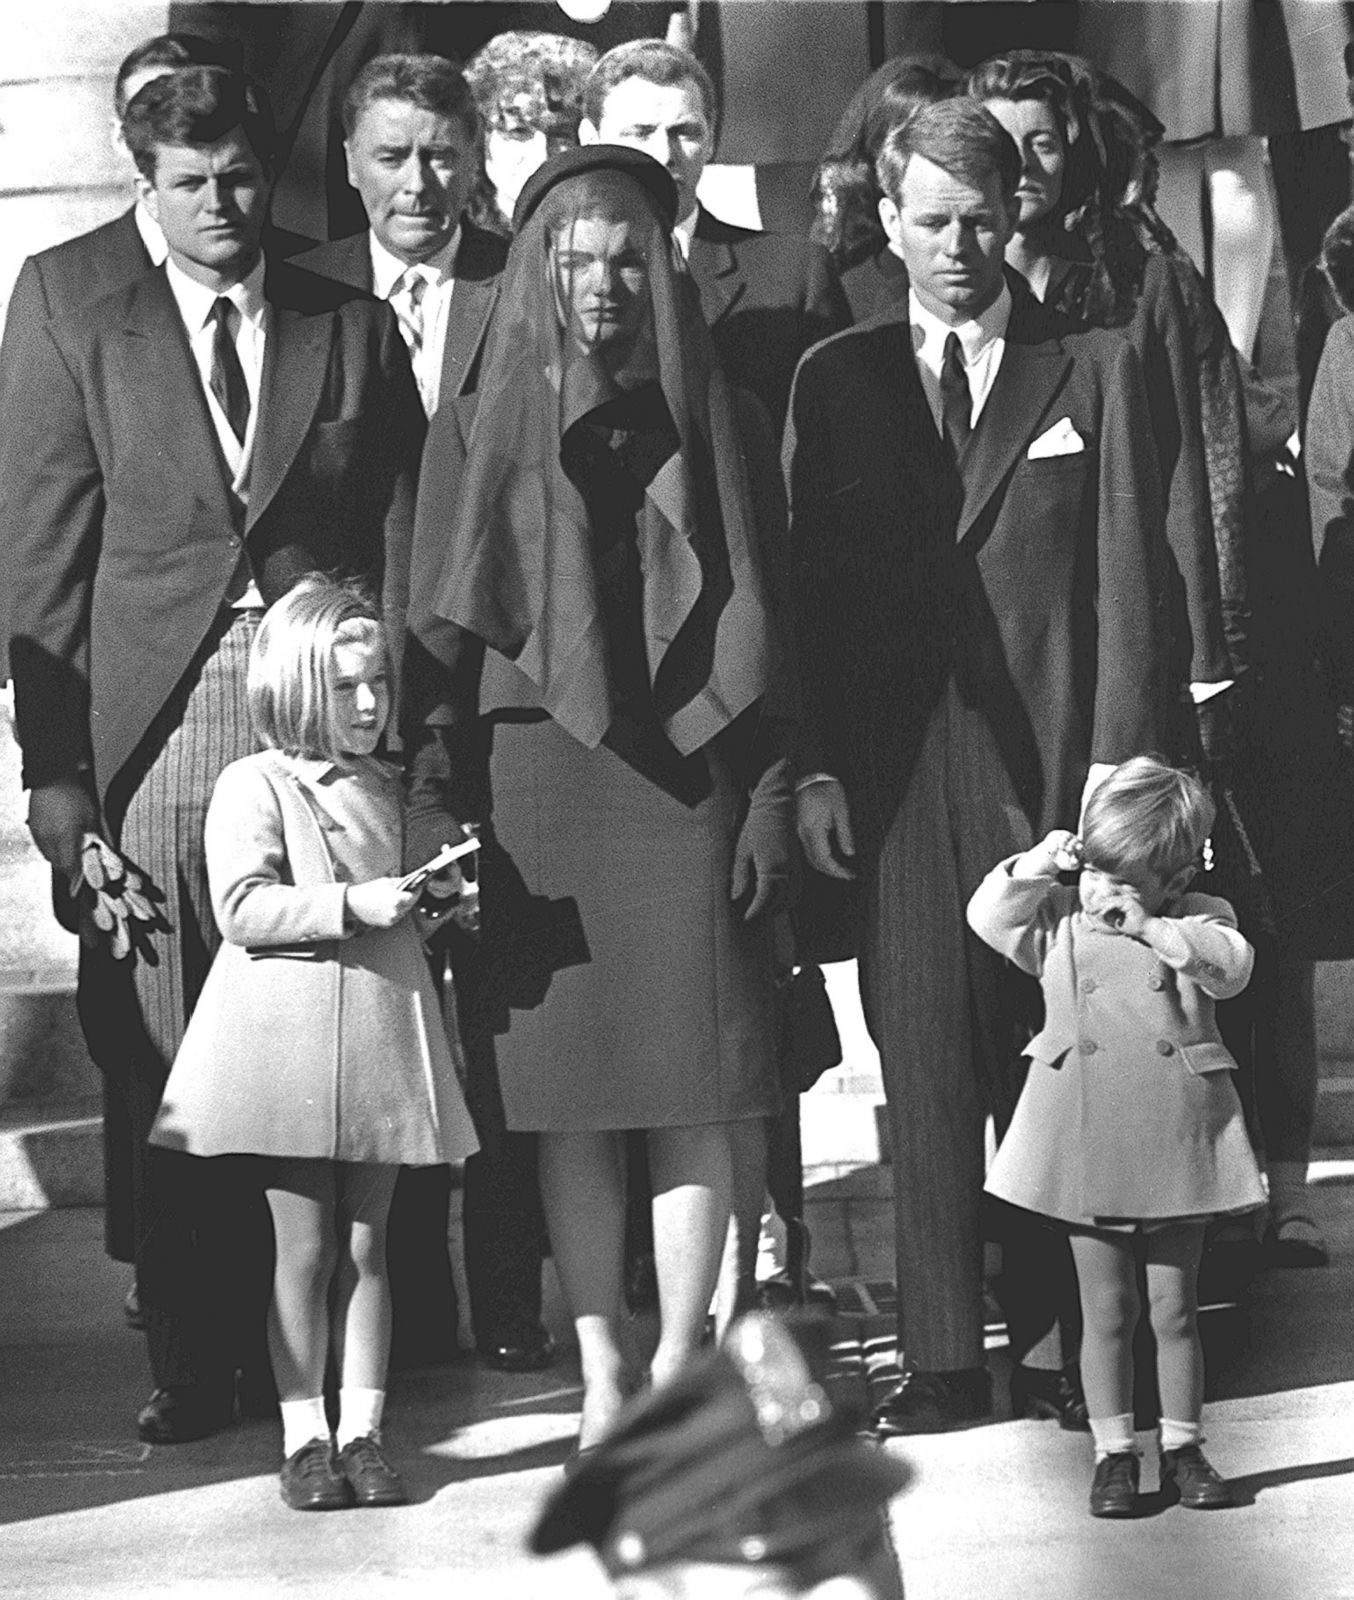 President Kennedy's funeral